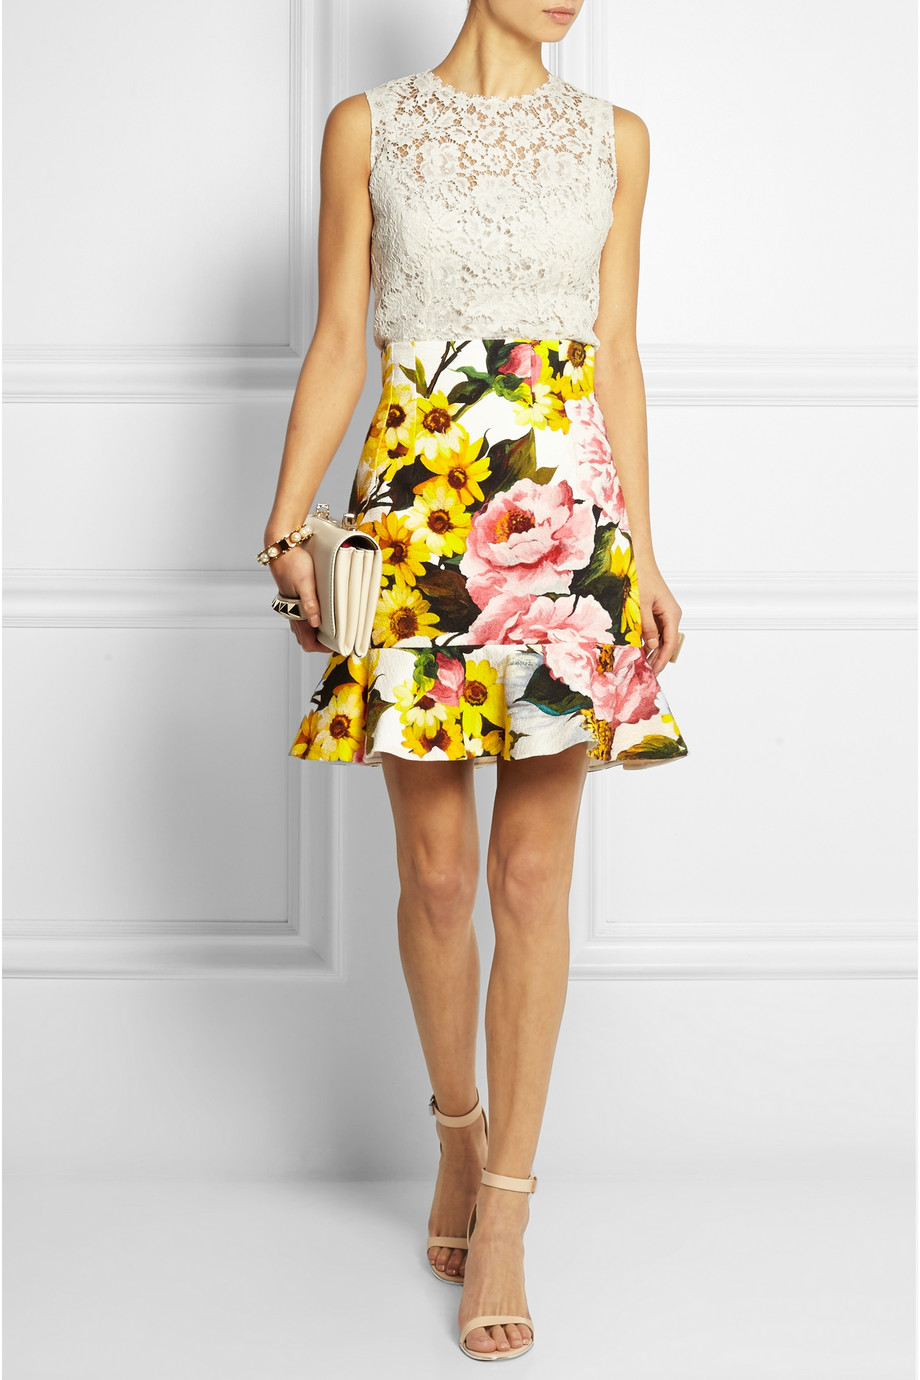 9060d47ca Dolce & Gabbana's floral-print skirt is flattering no matter what your  figure – it sits high on the waist and flares out at the hem.